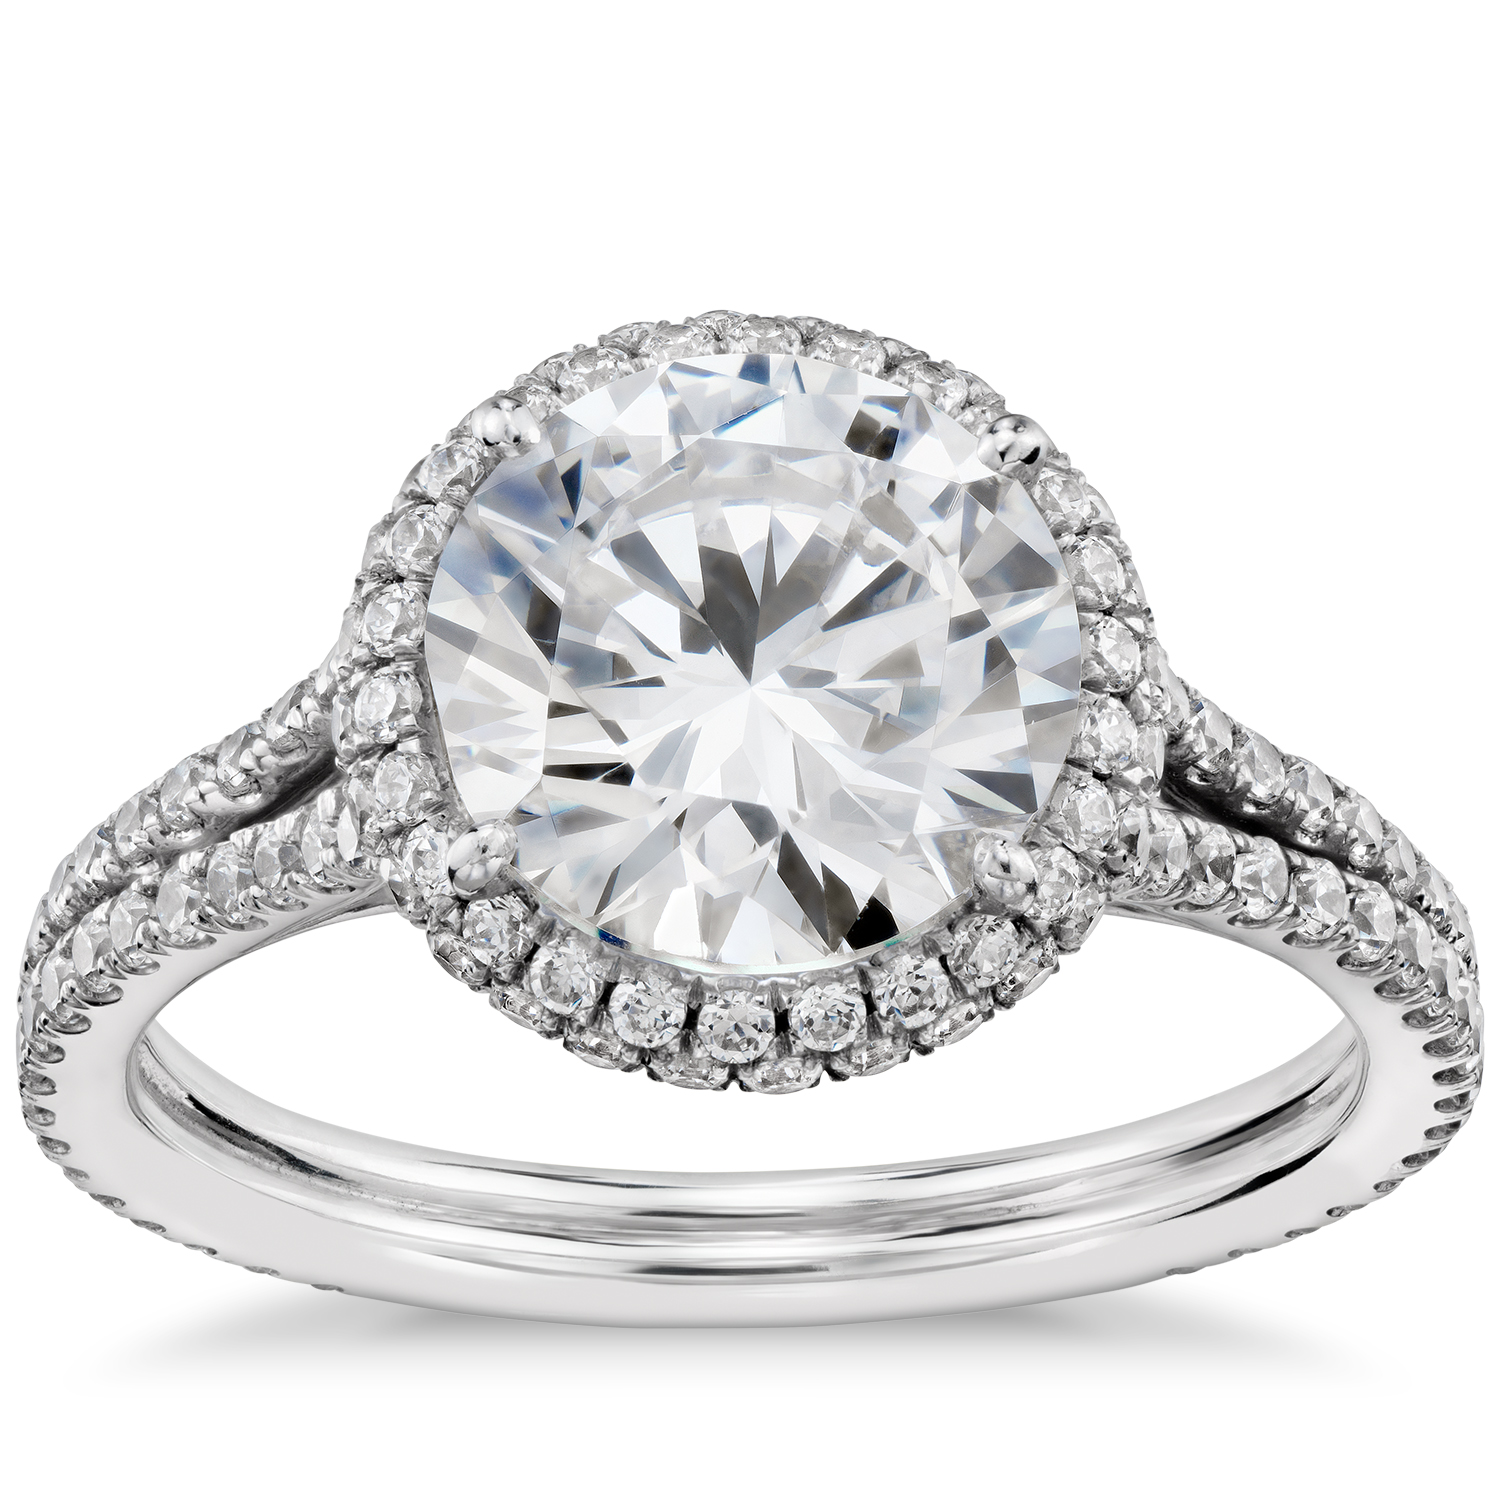 10 Engagement Rings That Will Make You Say Yes!